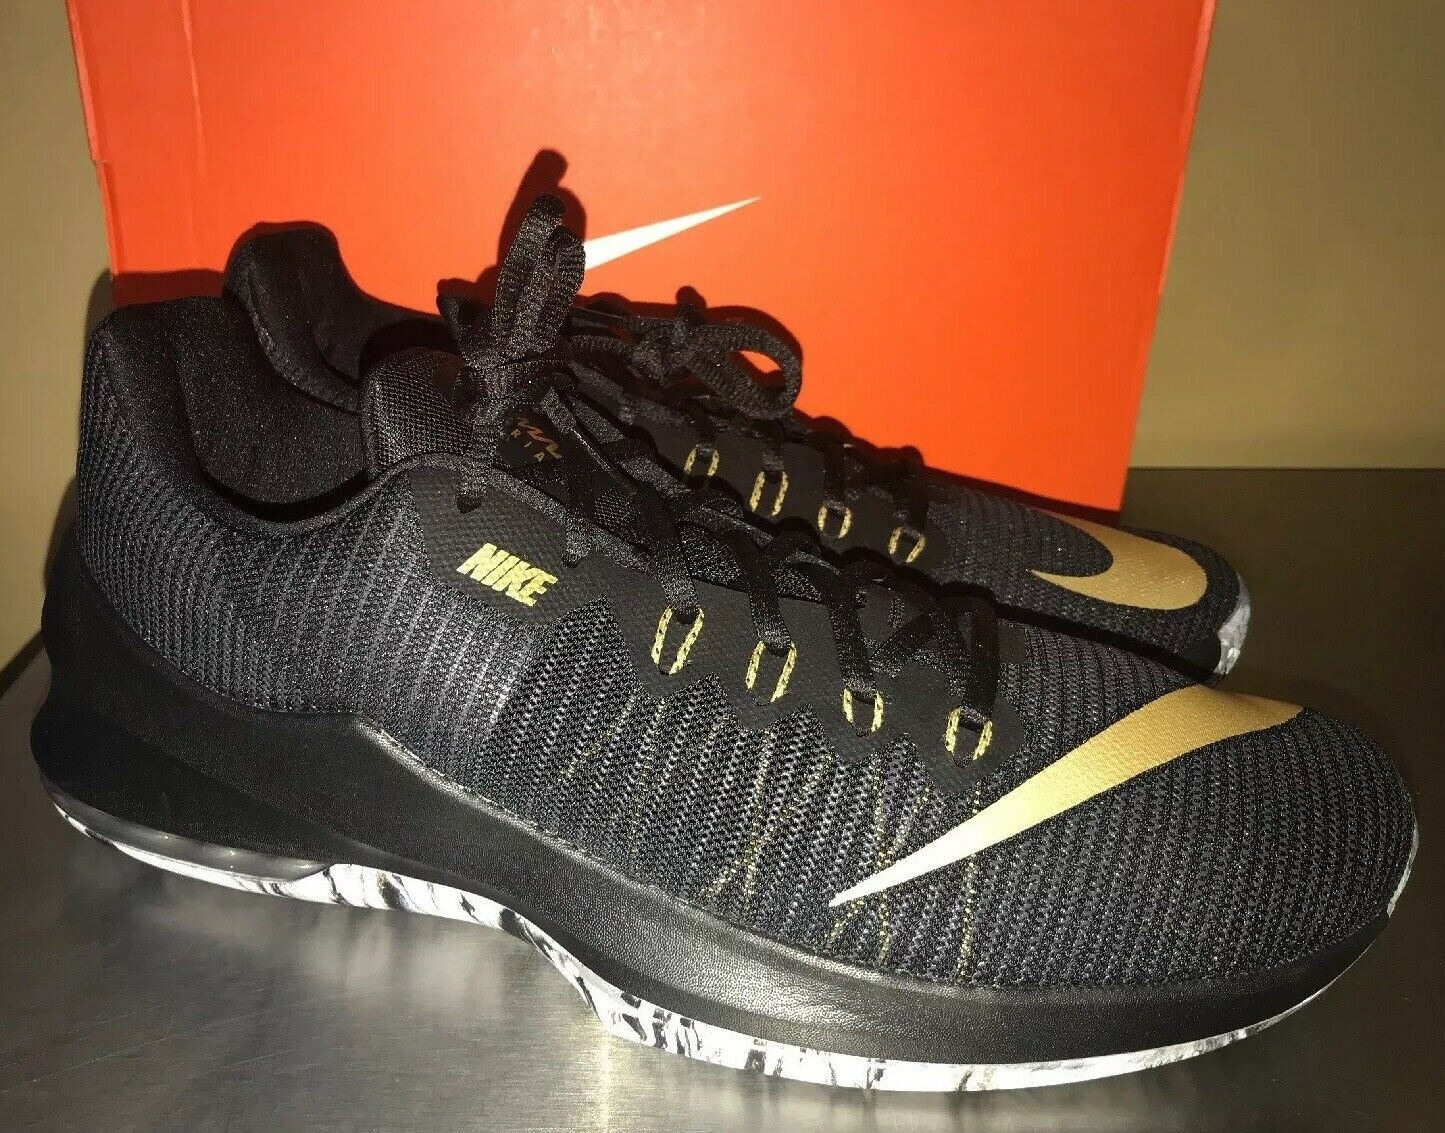 Nike Air Max Infuriate 2 Low shoes Black gold Sz 8.5 Men's 908975 090 NEW